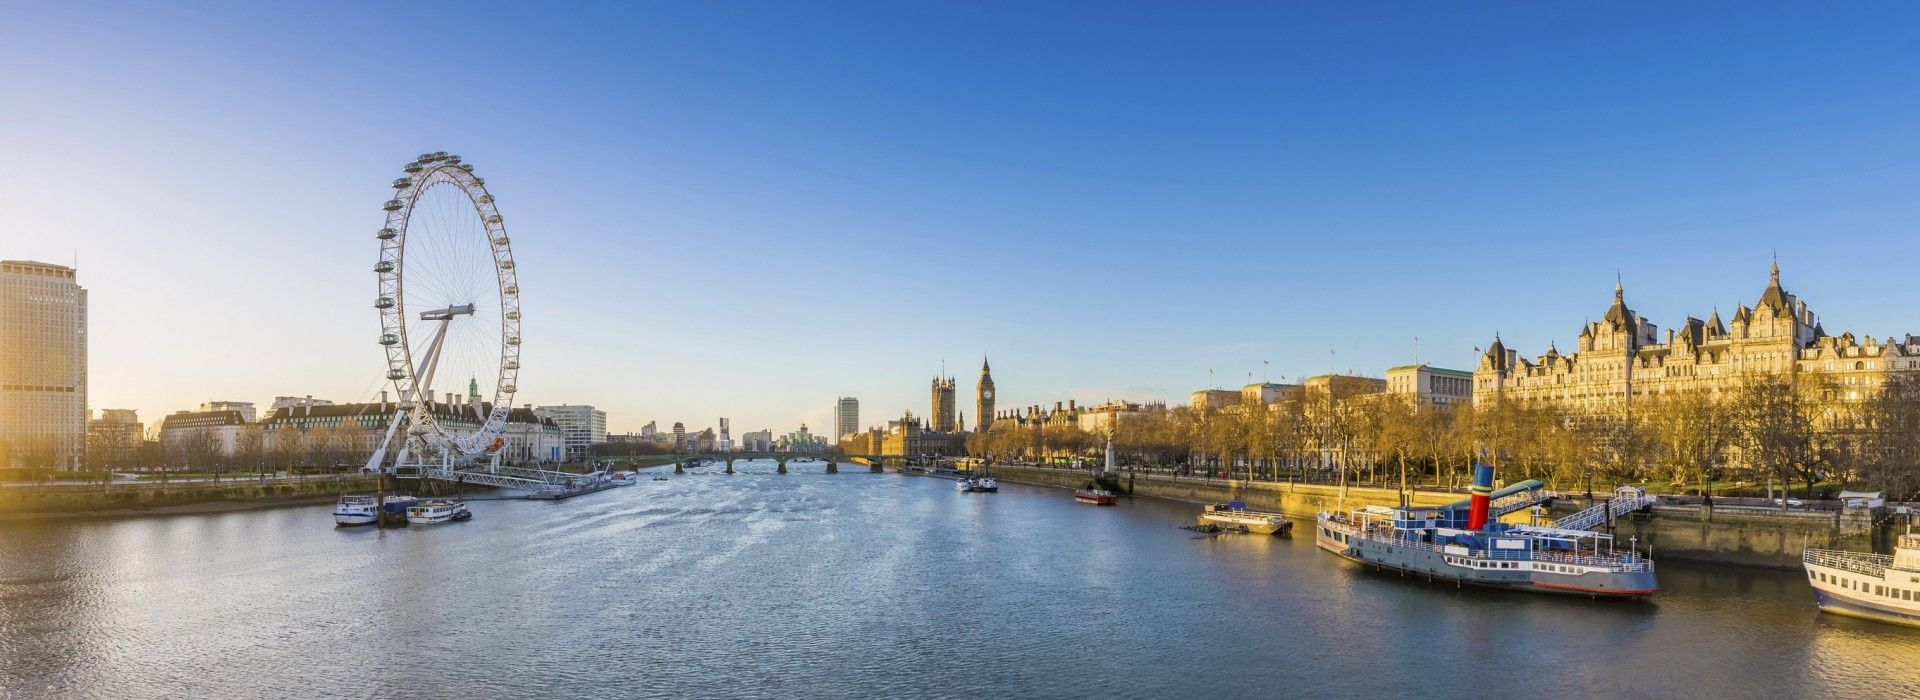 Cultural, religious and historic sites Tours in London